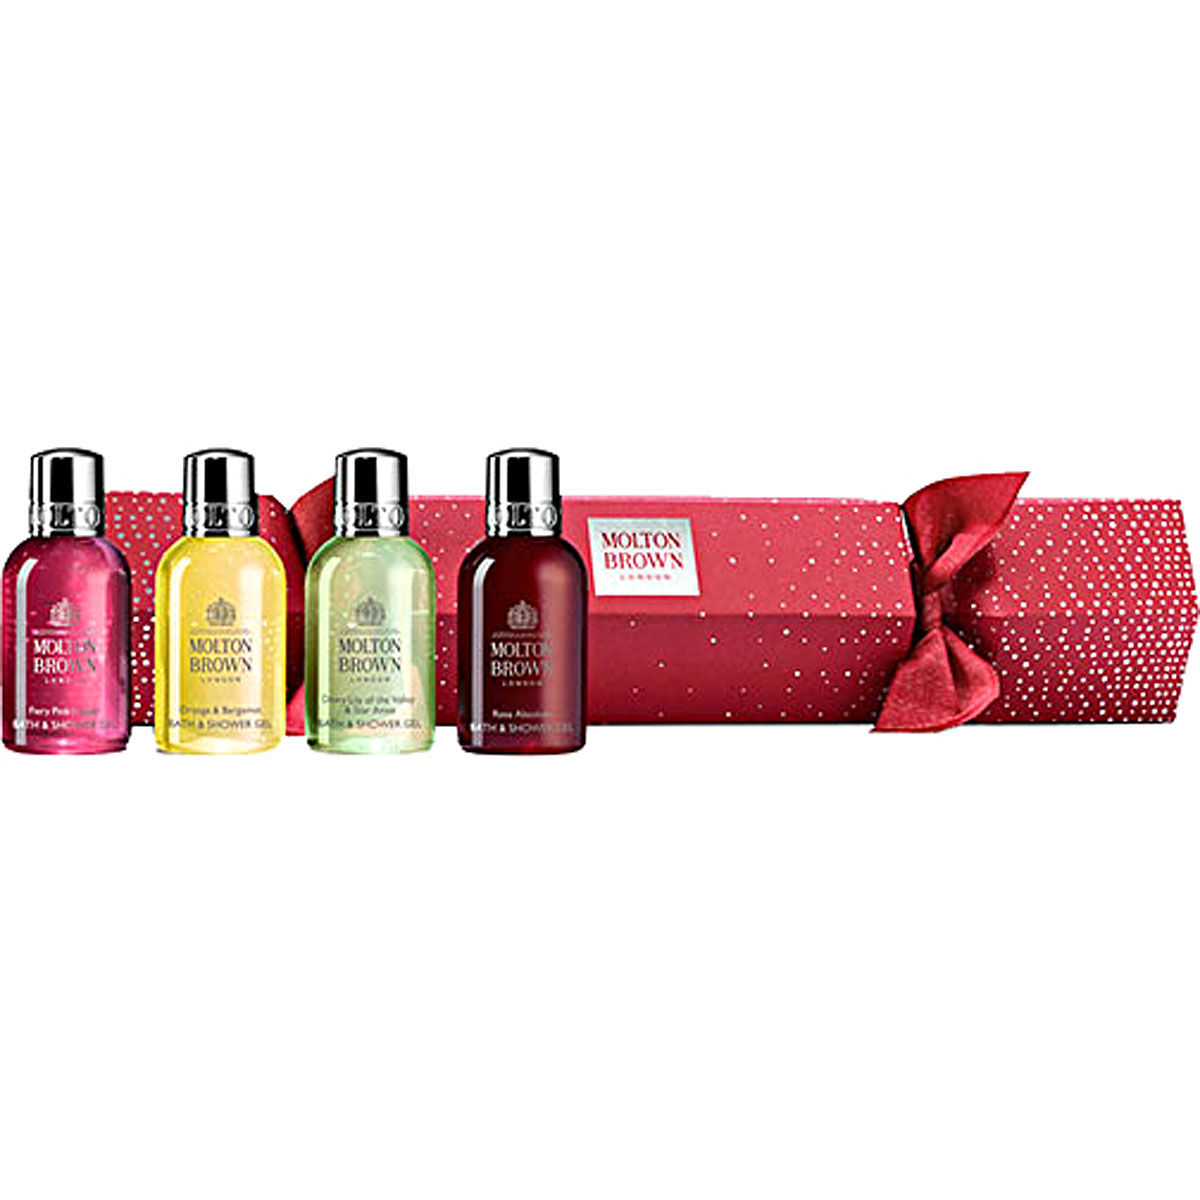 Molton Brown Beauty for Women, Exquisite Treats Cracker - Bath And Shower - 4 X 50 Ml, 2019